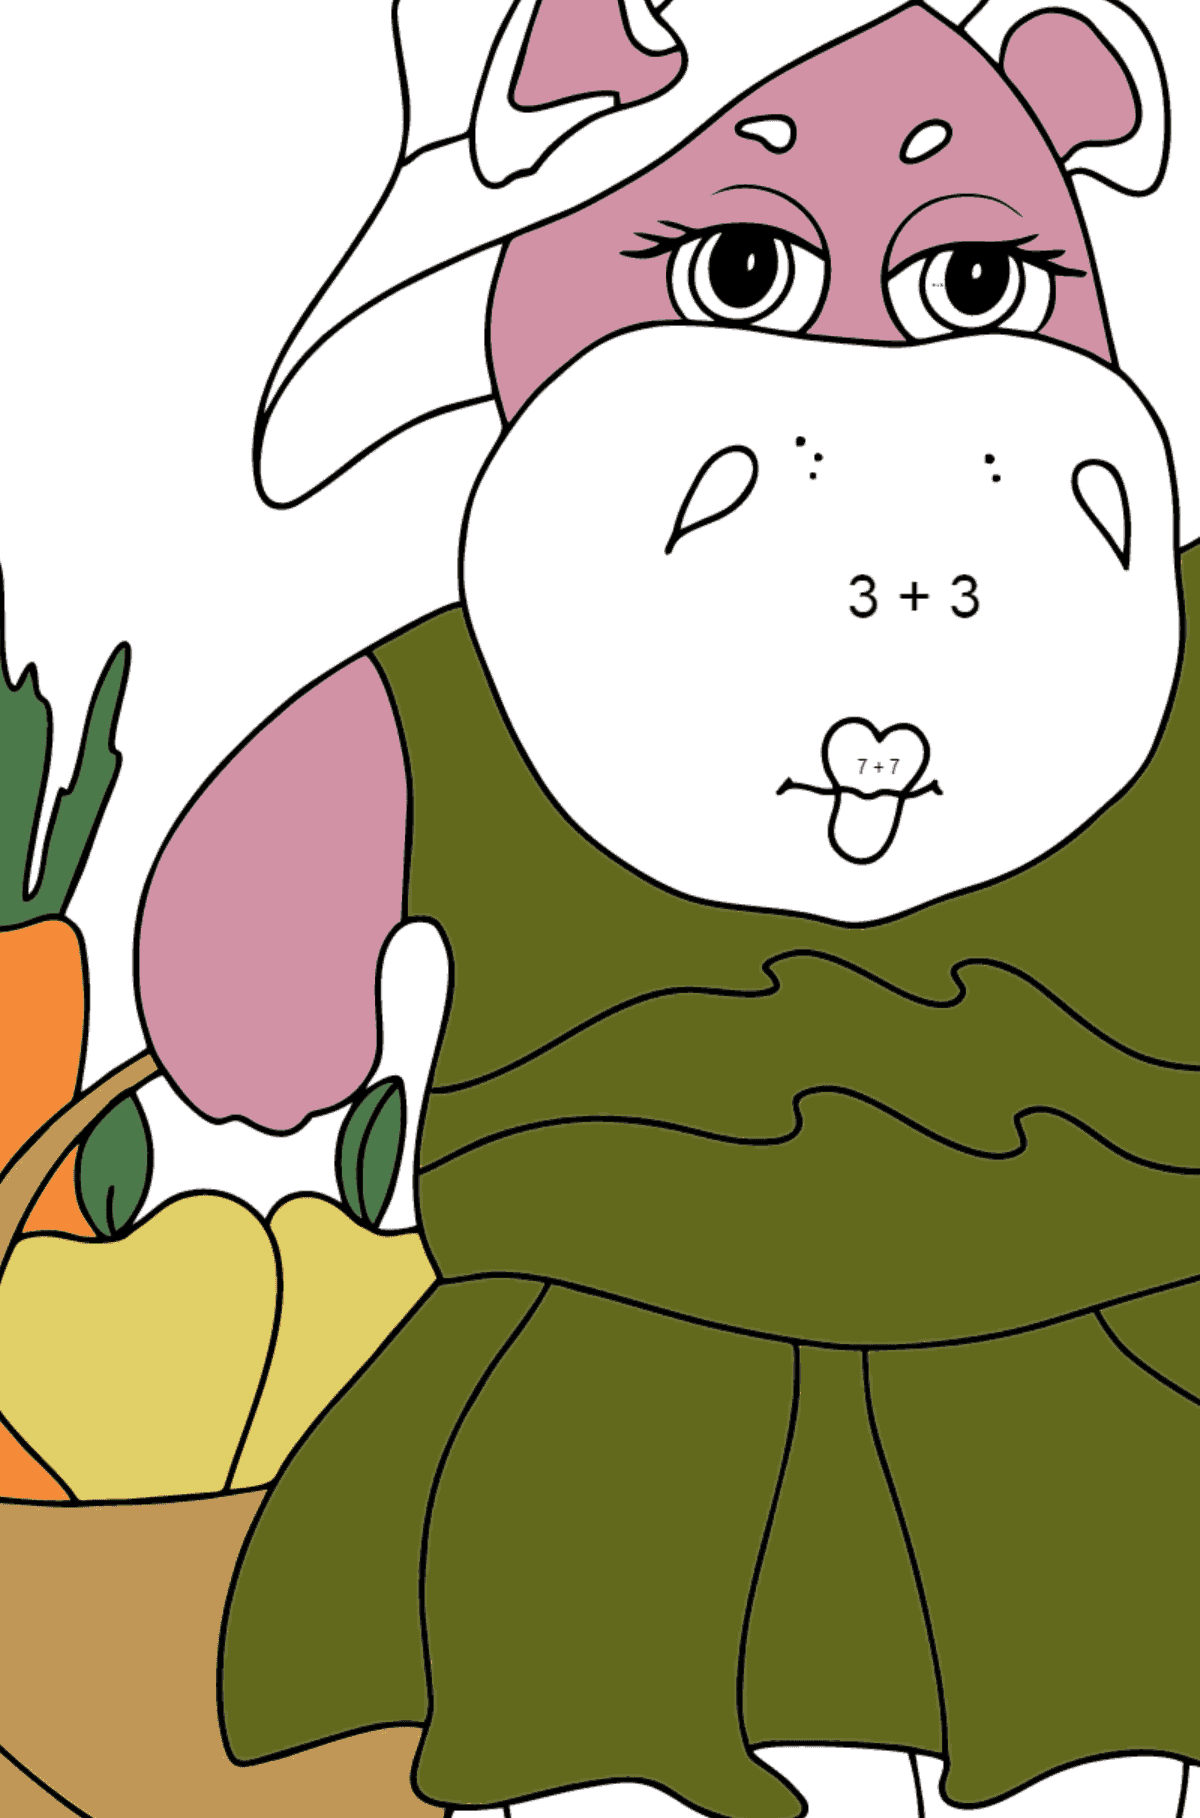 Coloring Page - A Hippo with a Basket of Carrots and Apples - Check it Out for Kids  - Color by Number Addition